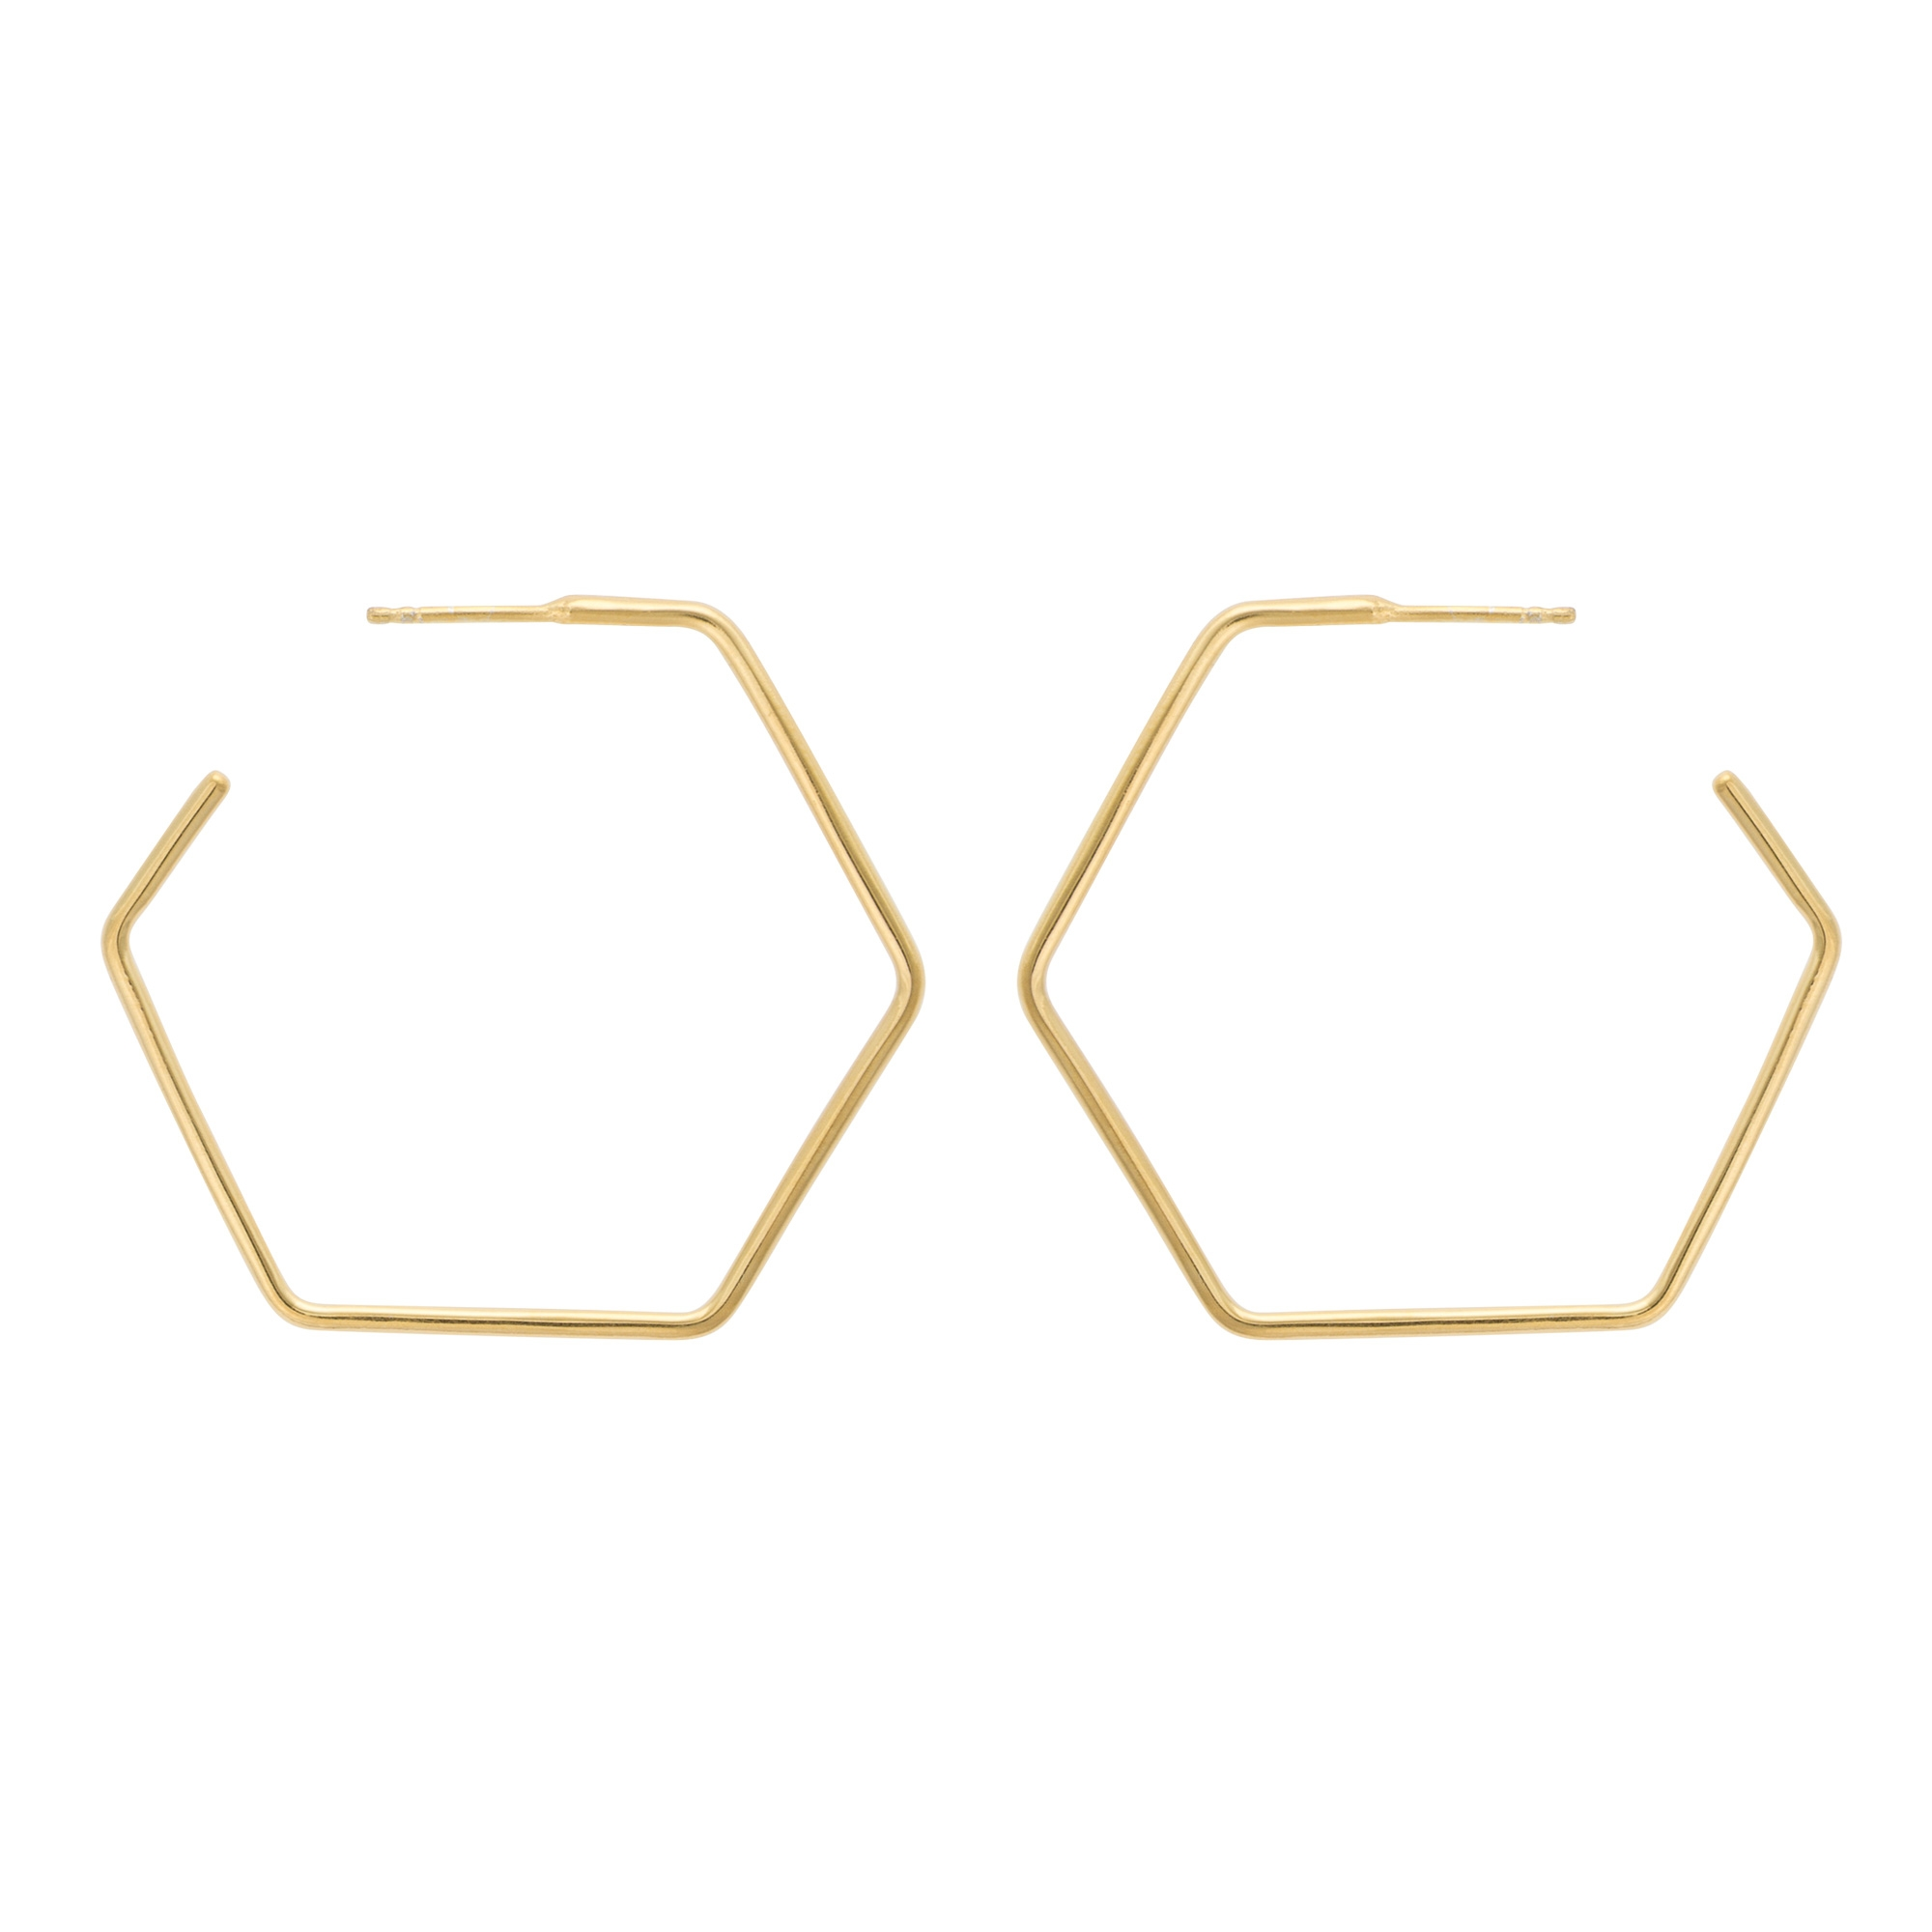 mint co hexagon jewelry oblong earrings img products